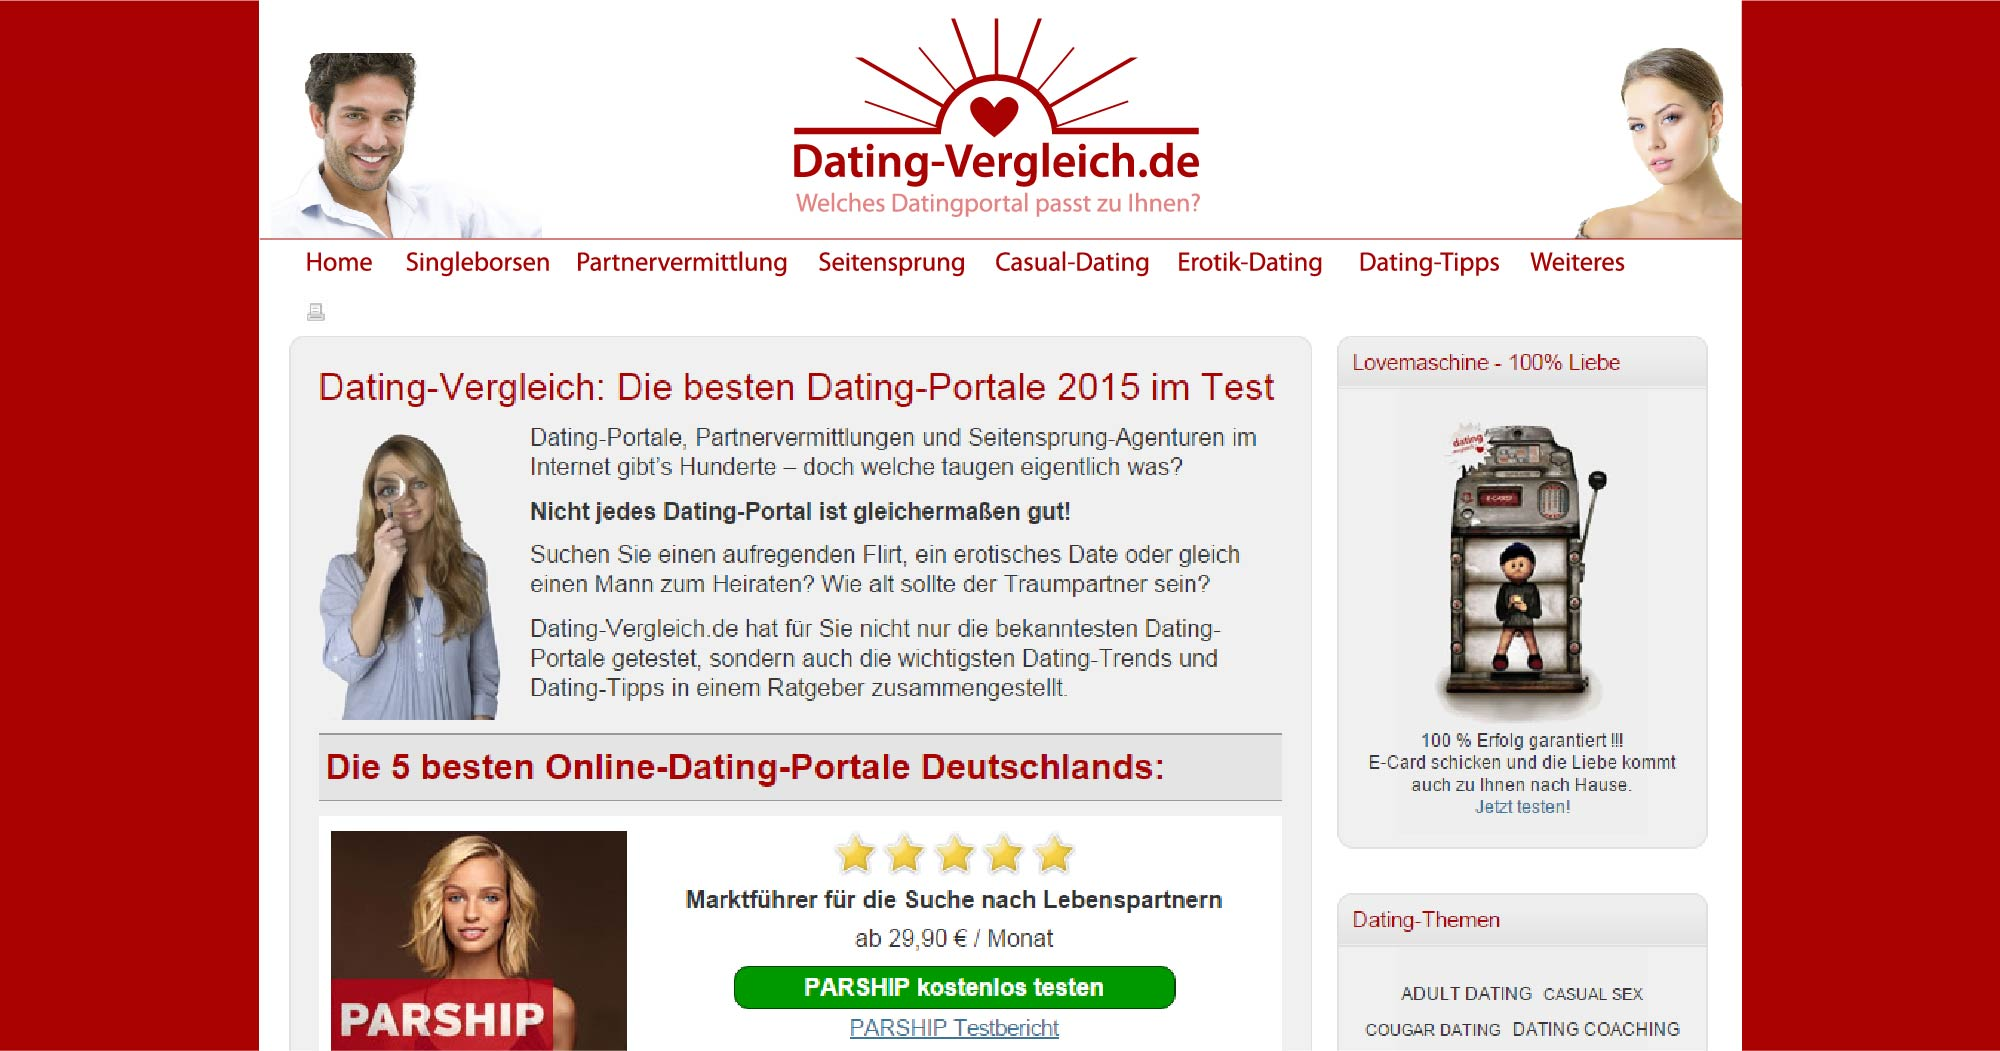 online dating portale vergleich bf1 operations matchmaking failed